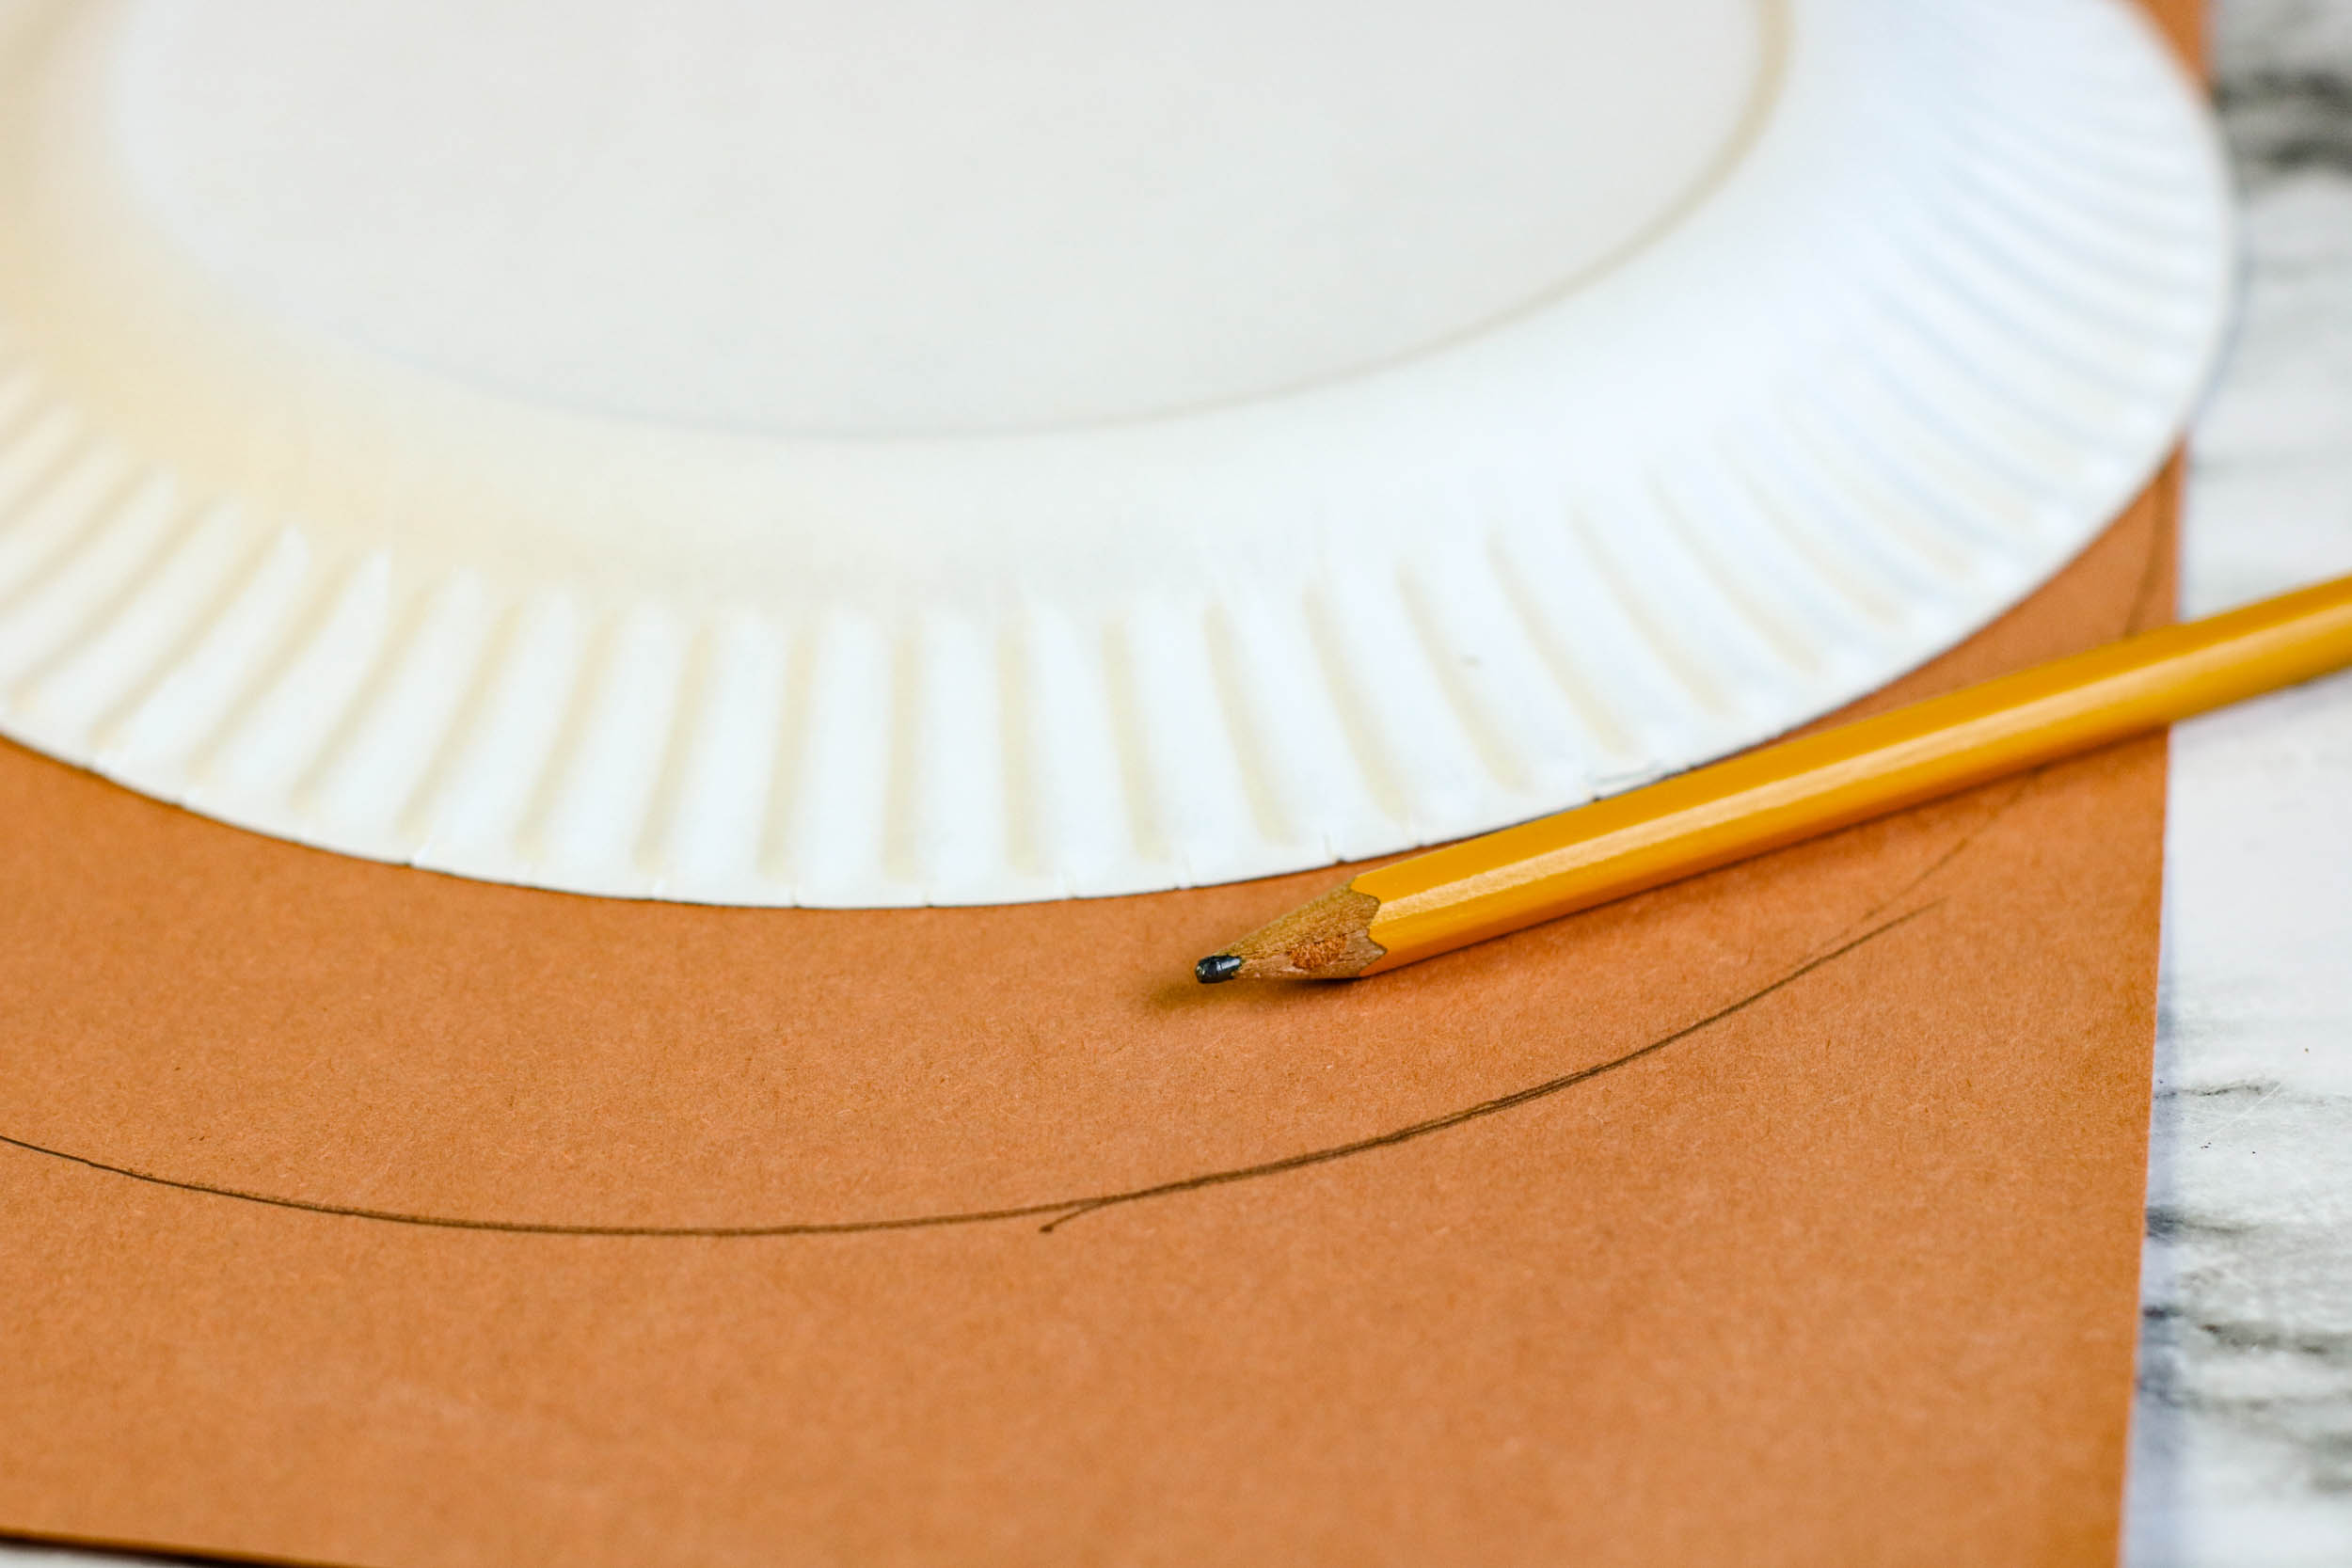 Tracing out the paper plate.